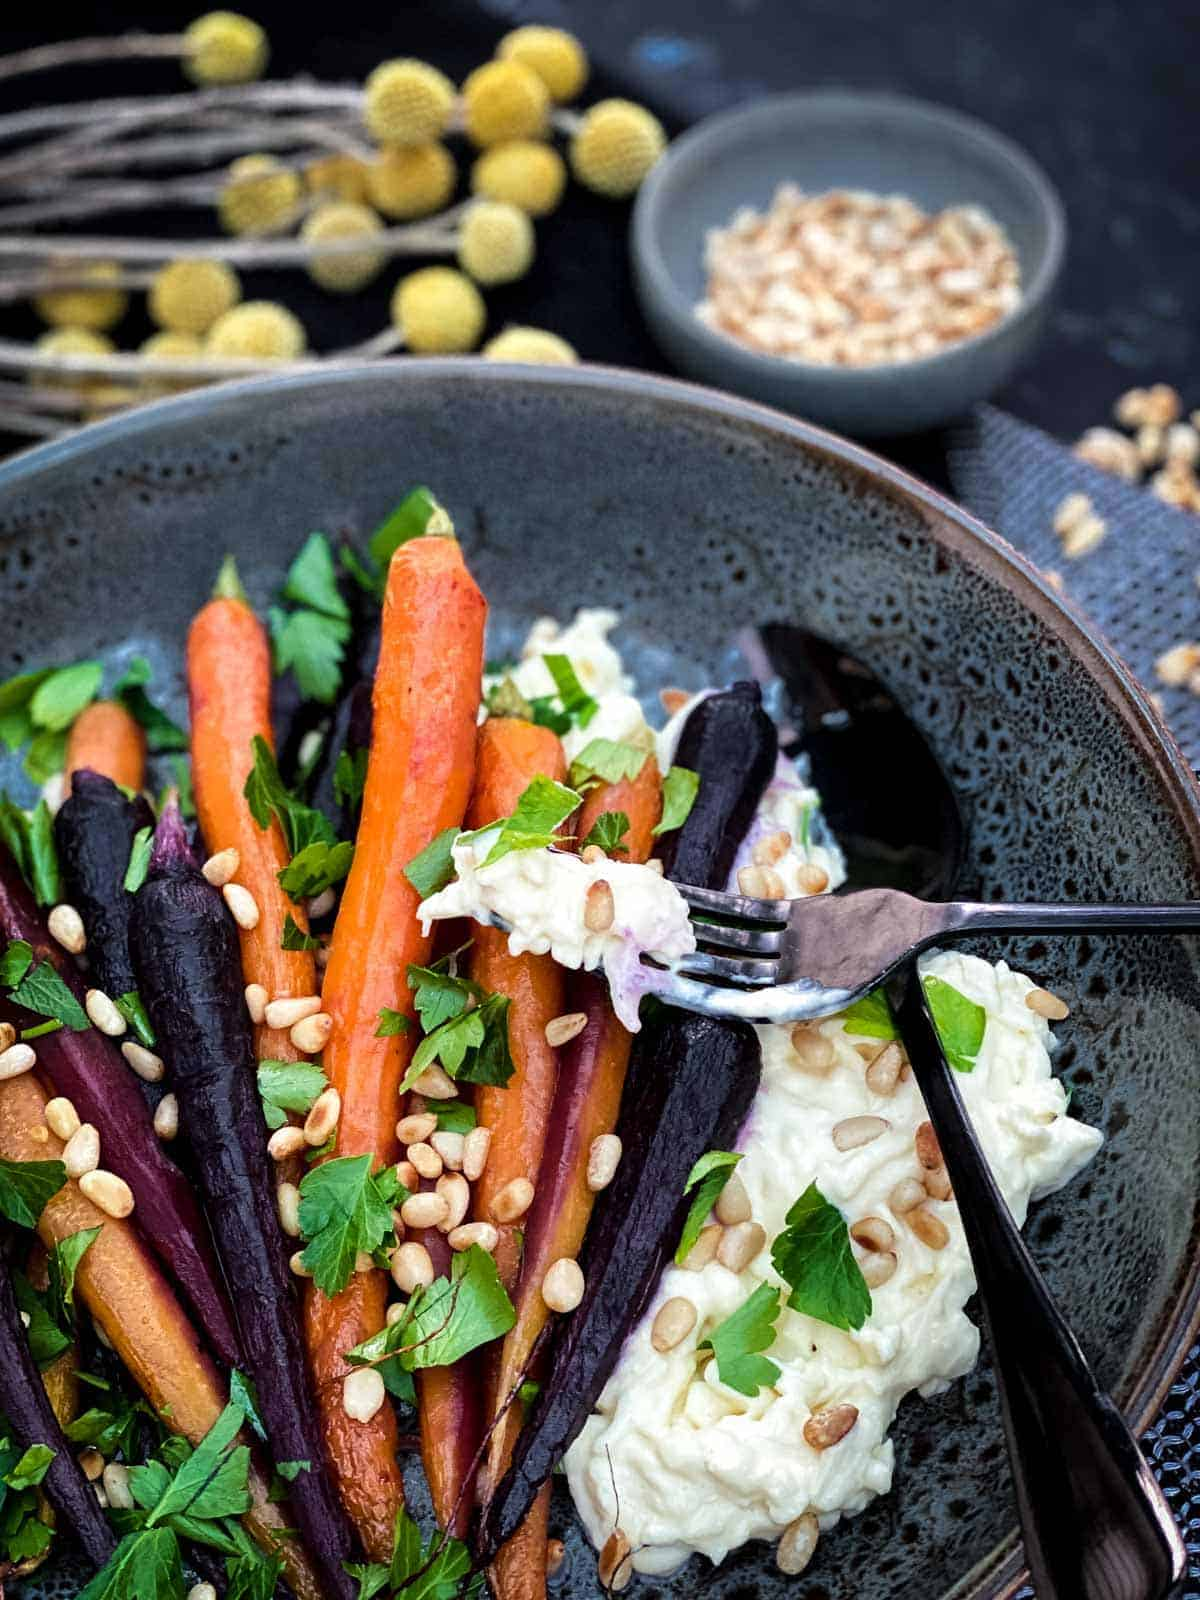 Roasted Maple Carrots with Stracciatella Cheese